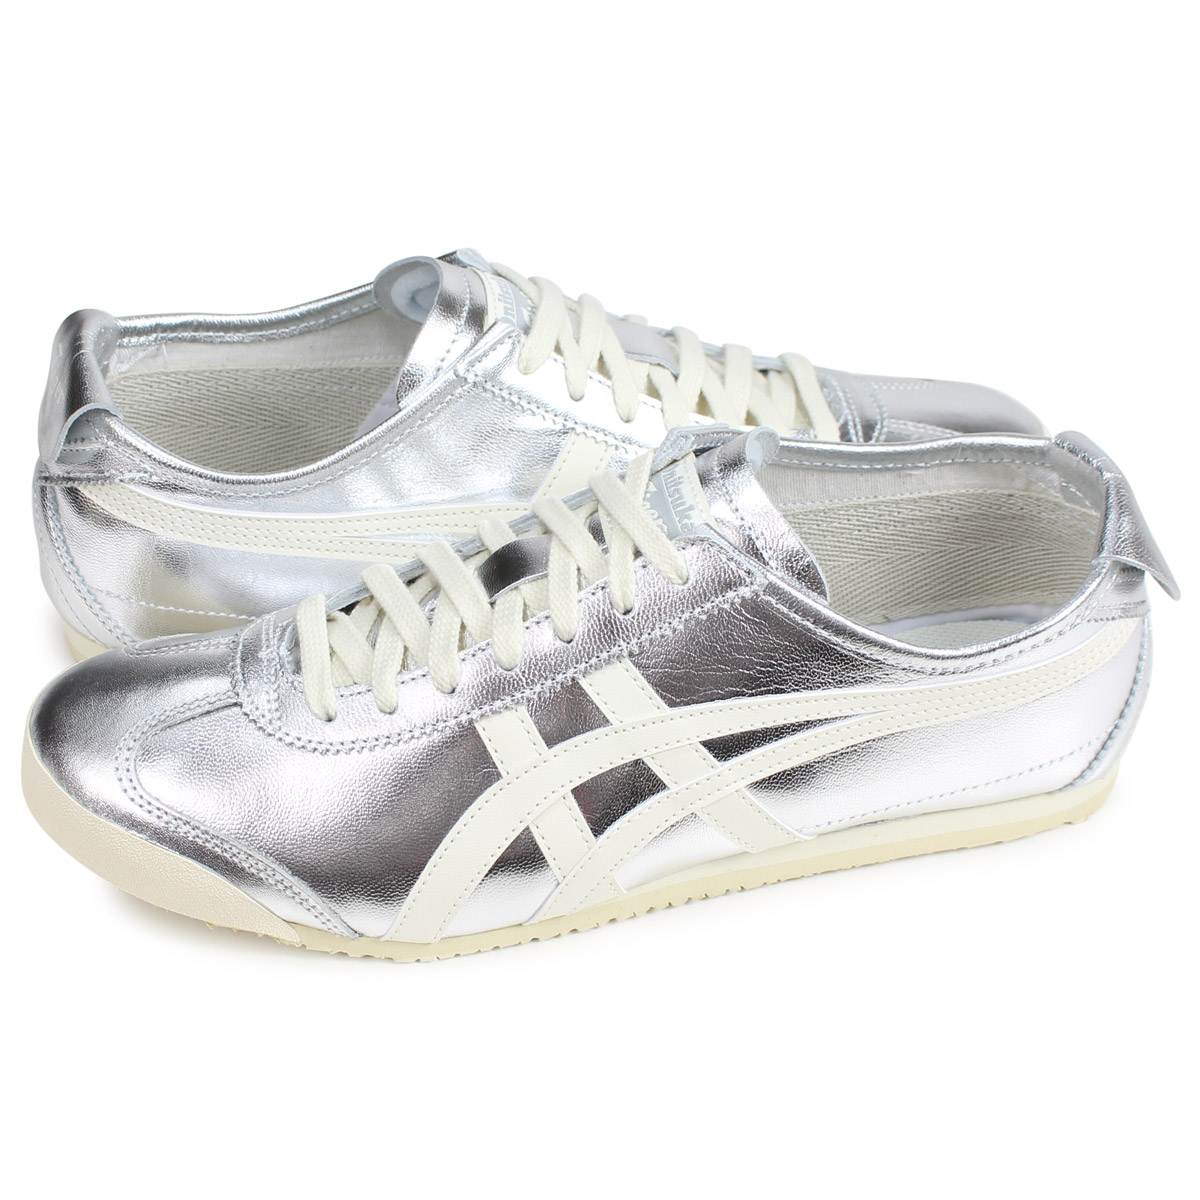 san francisco d3093 14c2d Onitsuka Tiger MEXICO 66 Onitsuka tiger Mexico 66 sneakers men gap Dis  white THL7C2-9399 [the 8/1 additional arrival] [197]